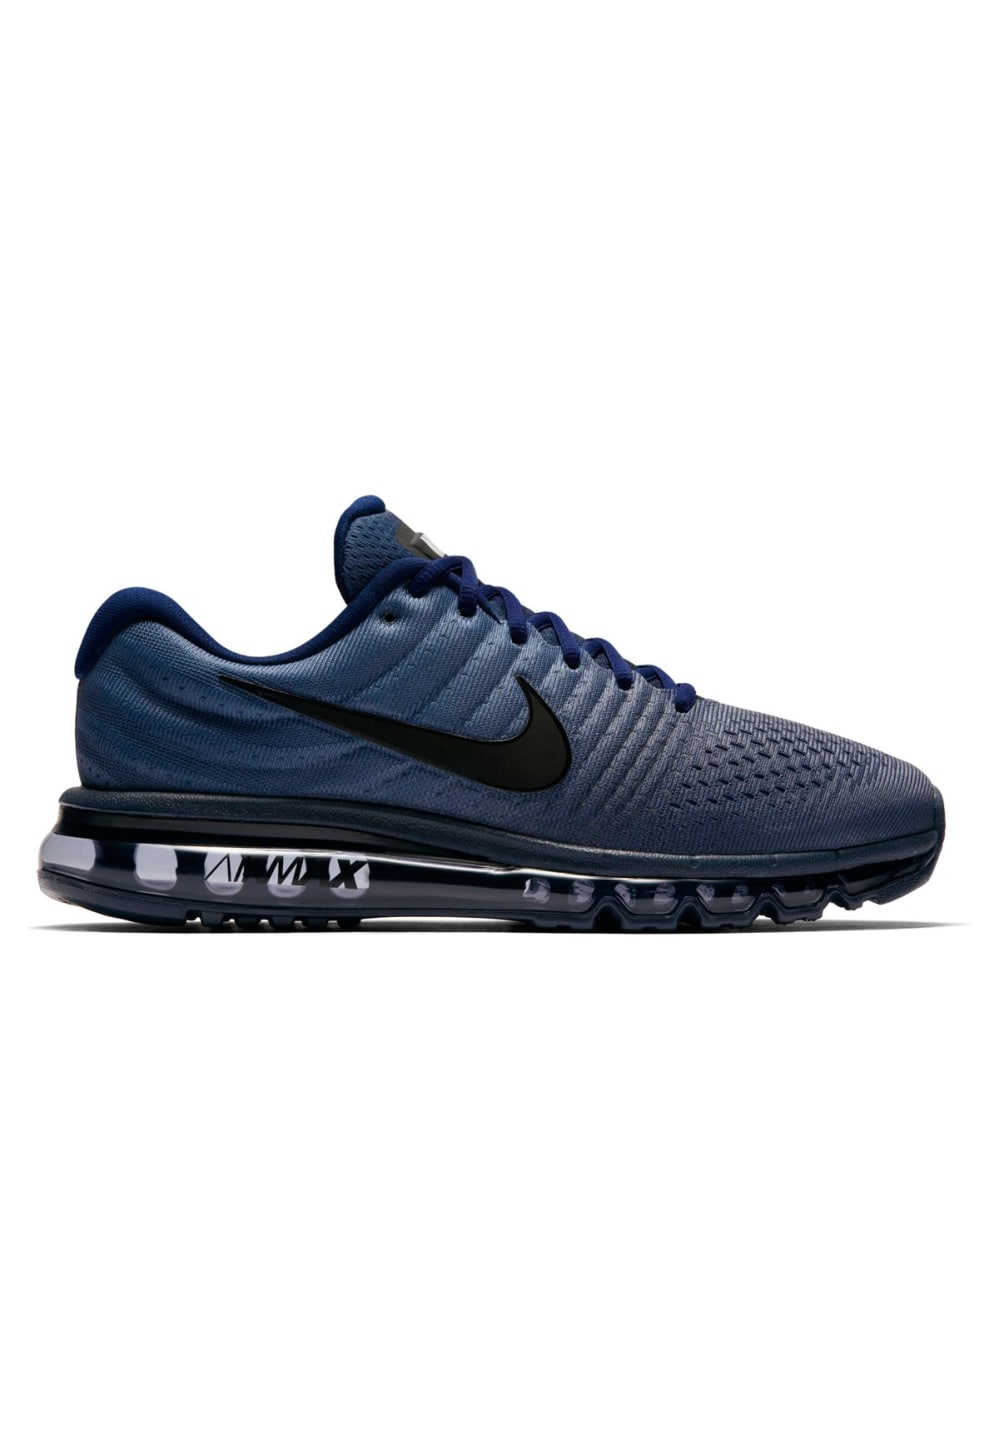 Chaussures de running Nike Air Max 2017